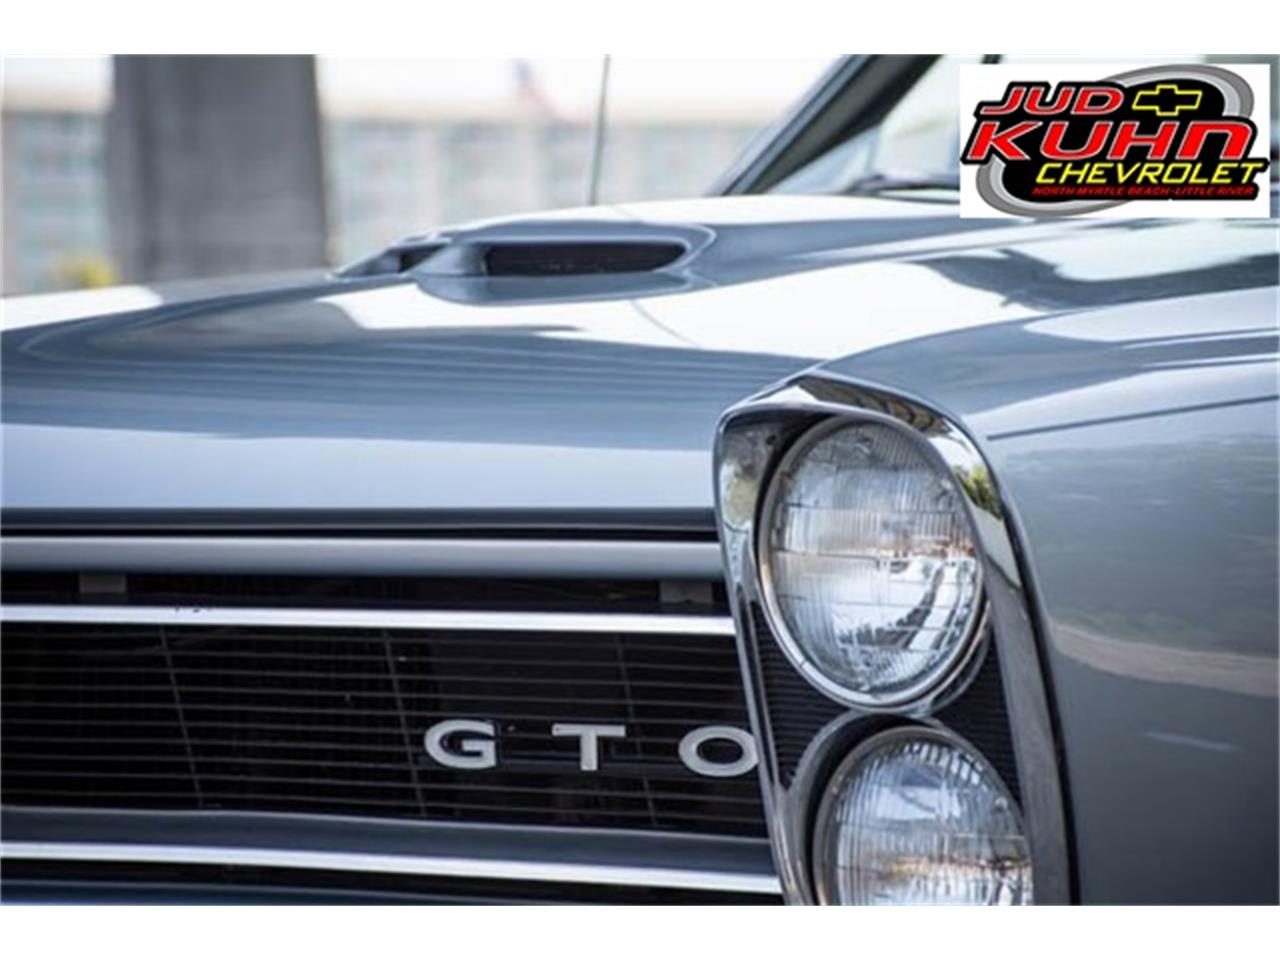 Large Picture of 1965 GTO Offered by Jud Kuhn Chevrolet - J909